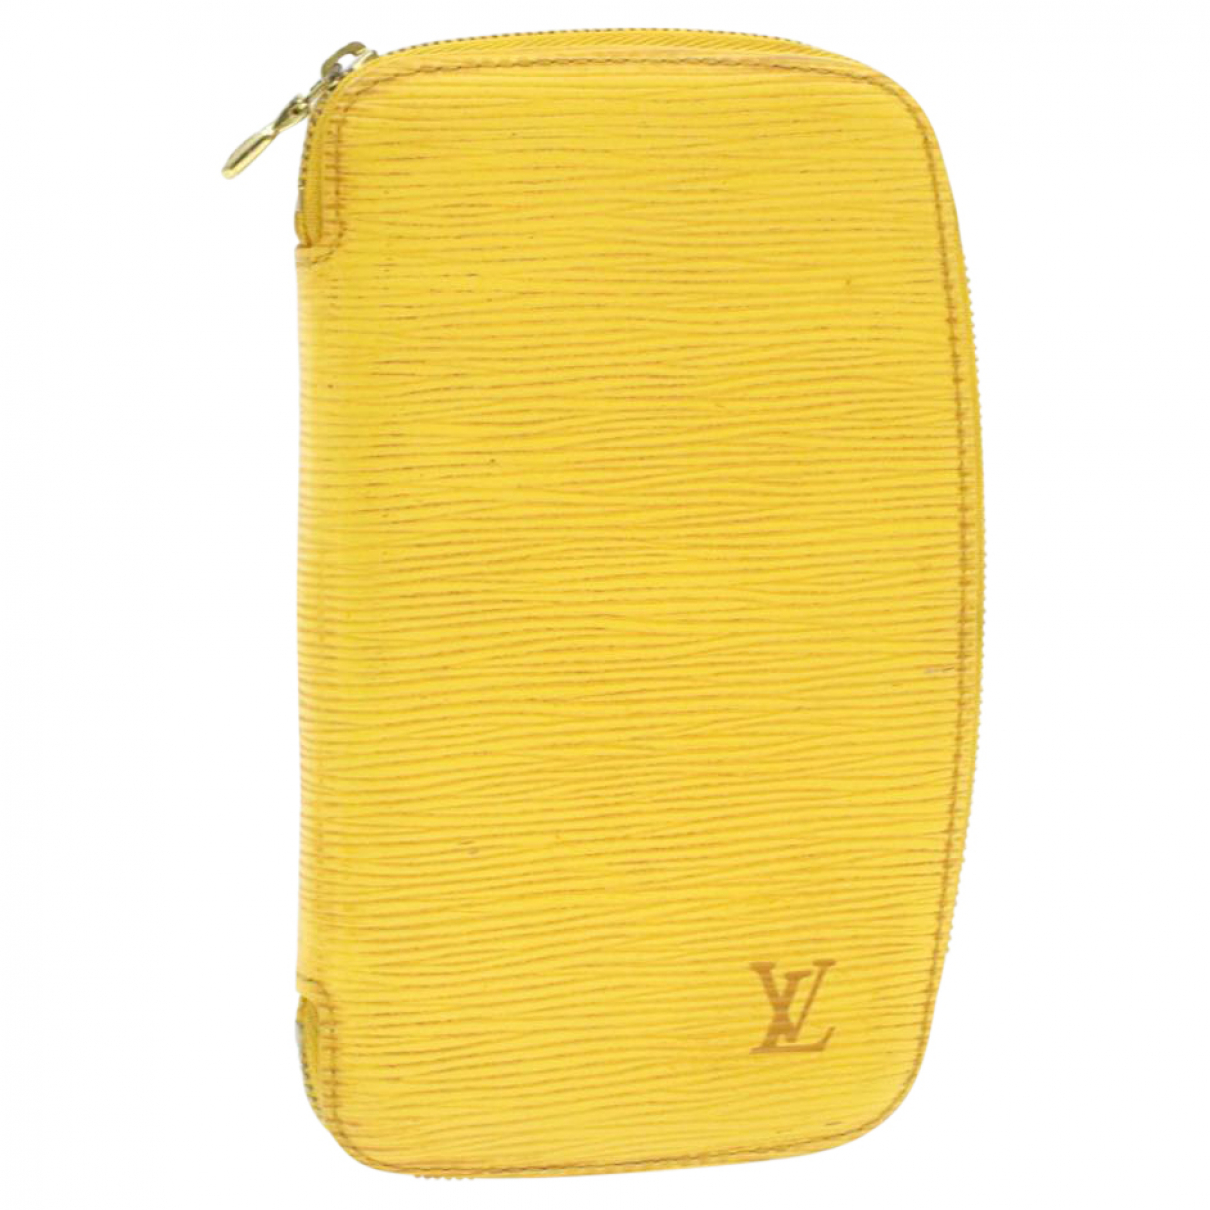 Pañuelo Louis Vuitton